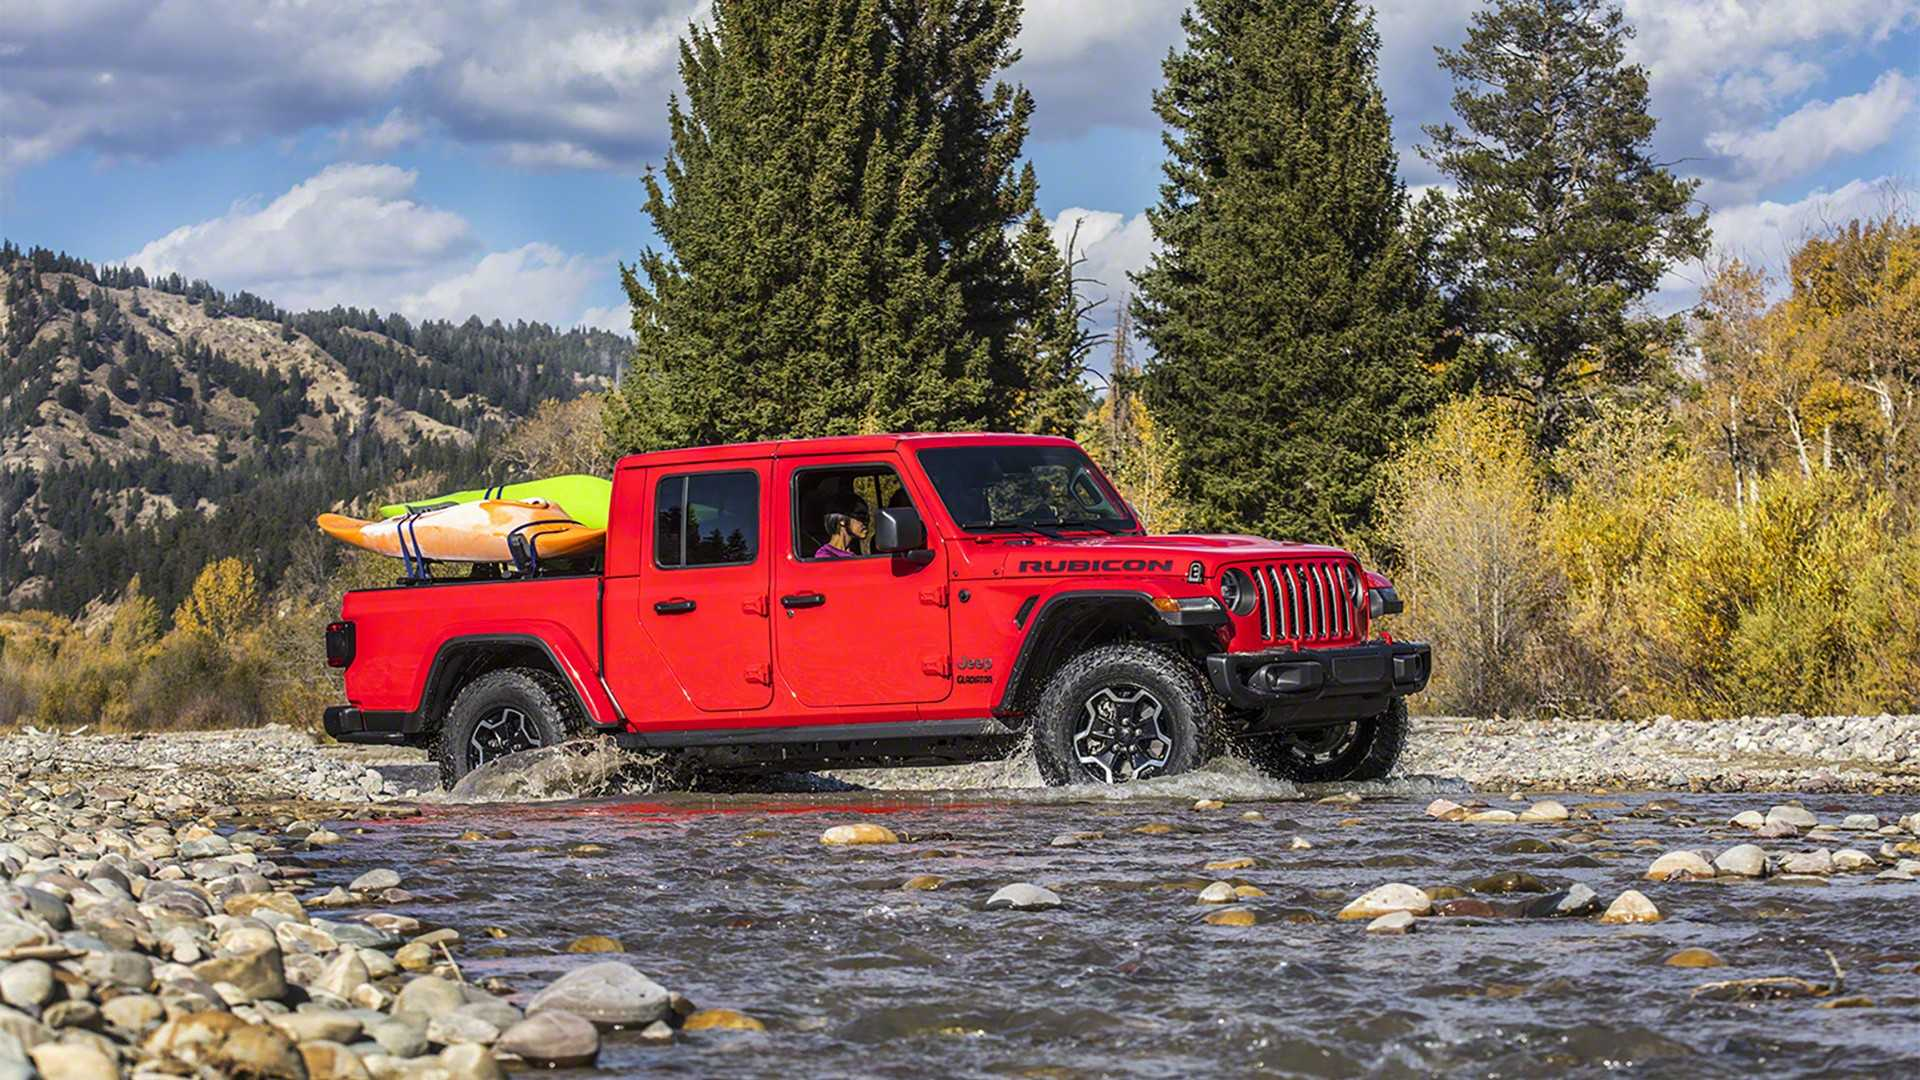 2020 jeep gladiator goes official with best-in-class towing capacity